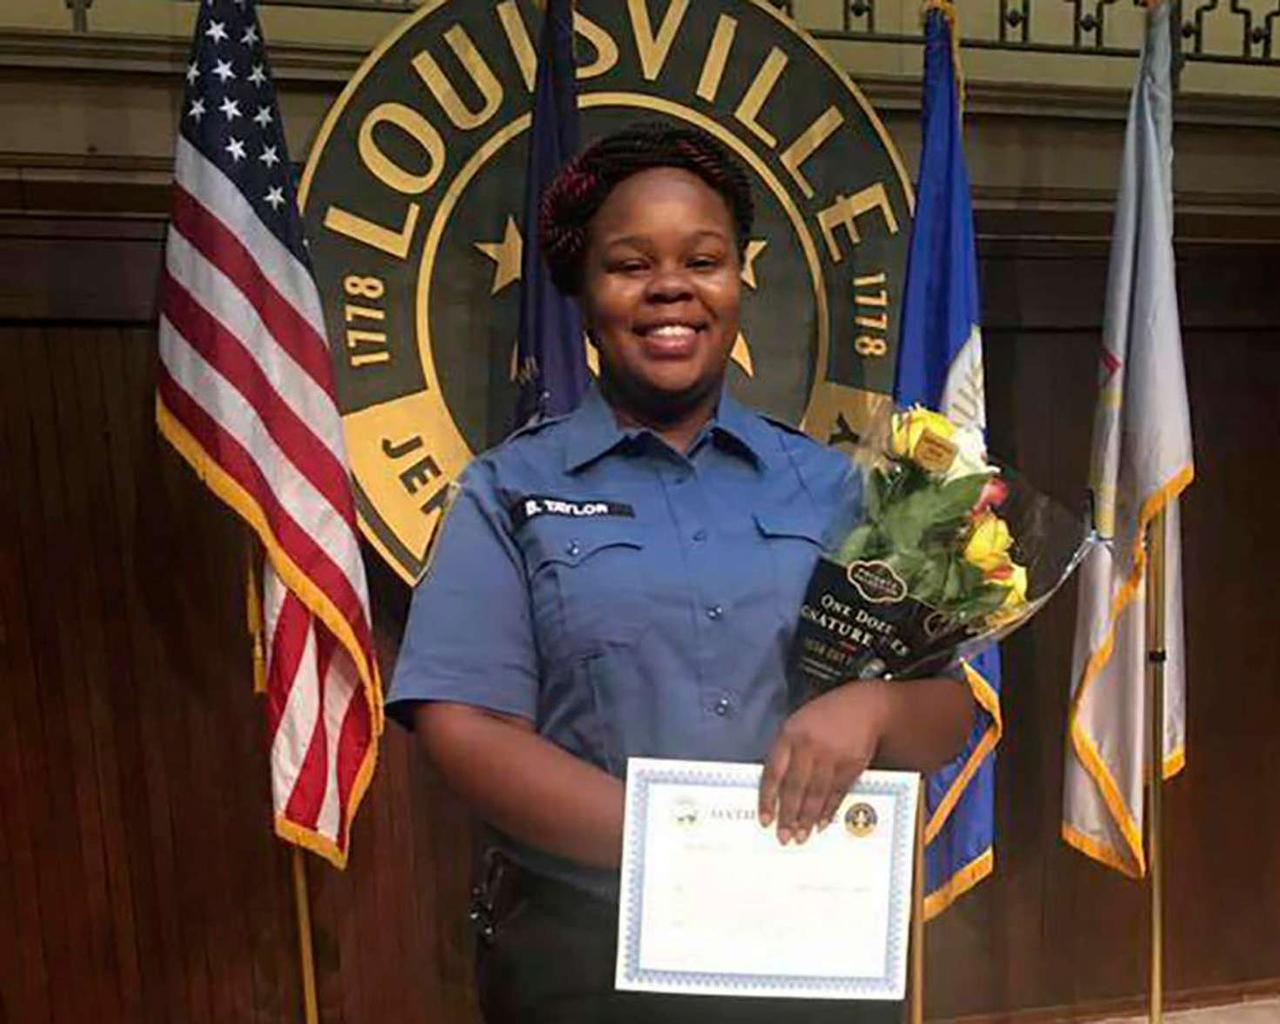 Kentucky imposes restrictions on non-knocking following the death of Breonna Taylor